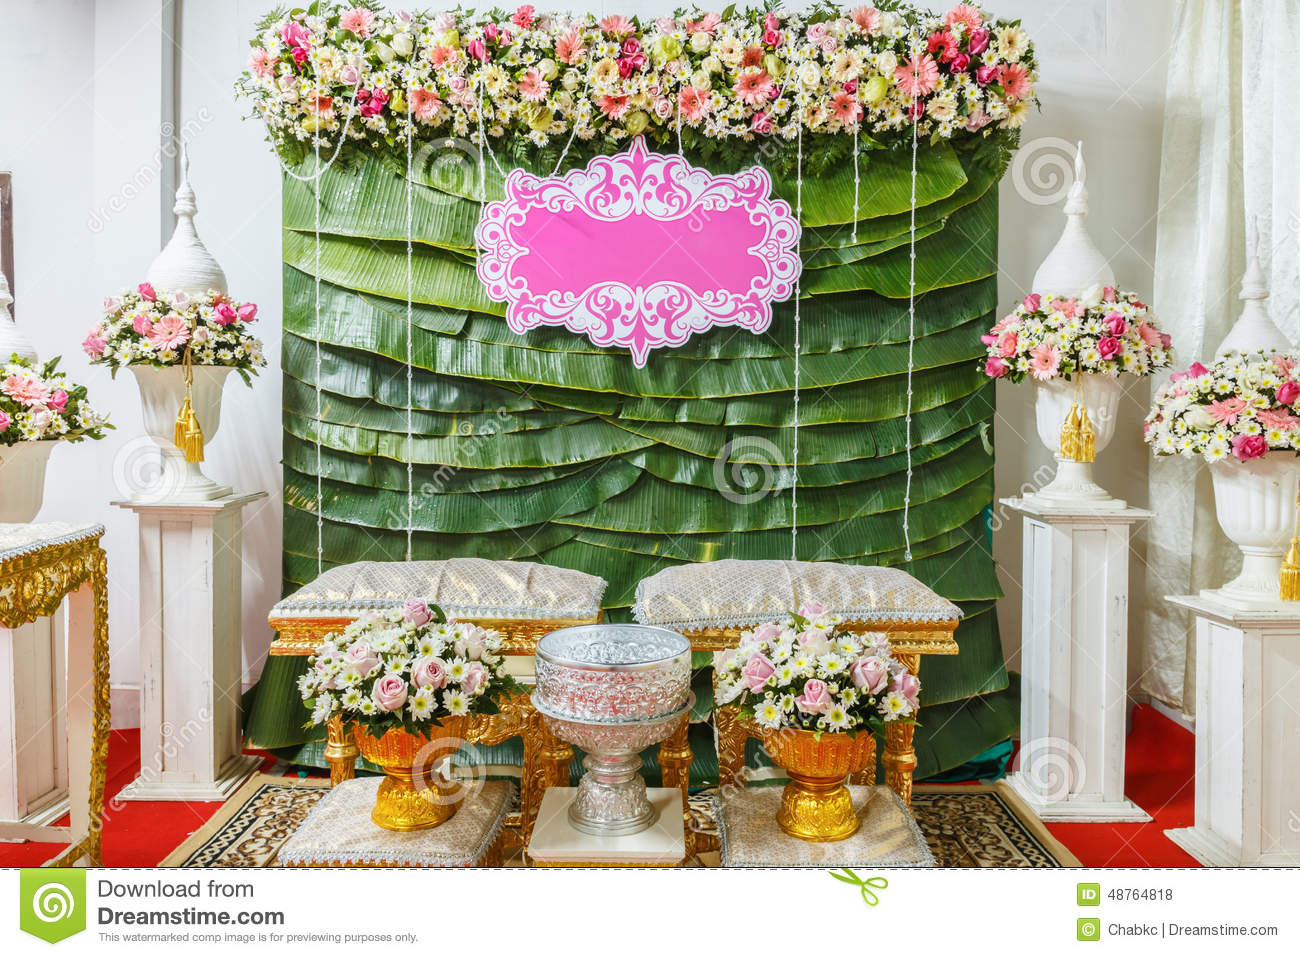 flower tray in thai wedding ceremony stock photo image 48764818. Black Bedroom Furniture Sets. Home Design Ideas